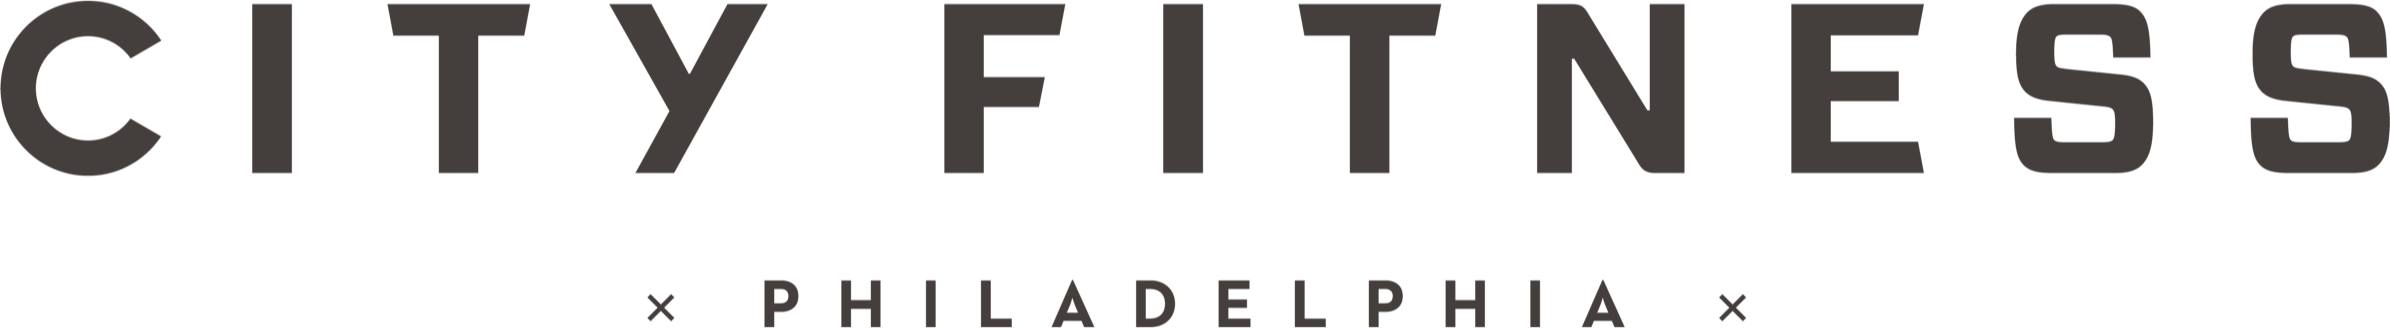 City Fitness Philly